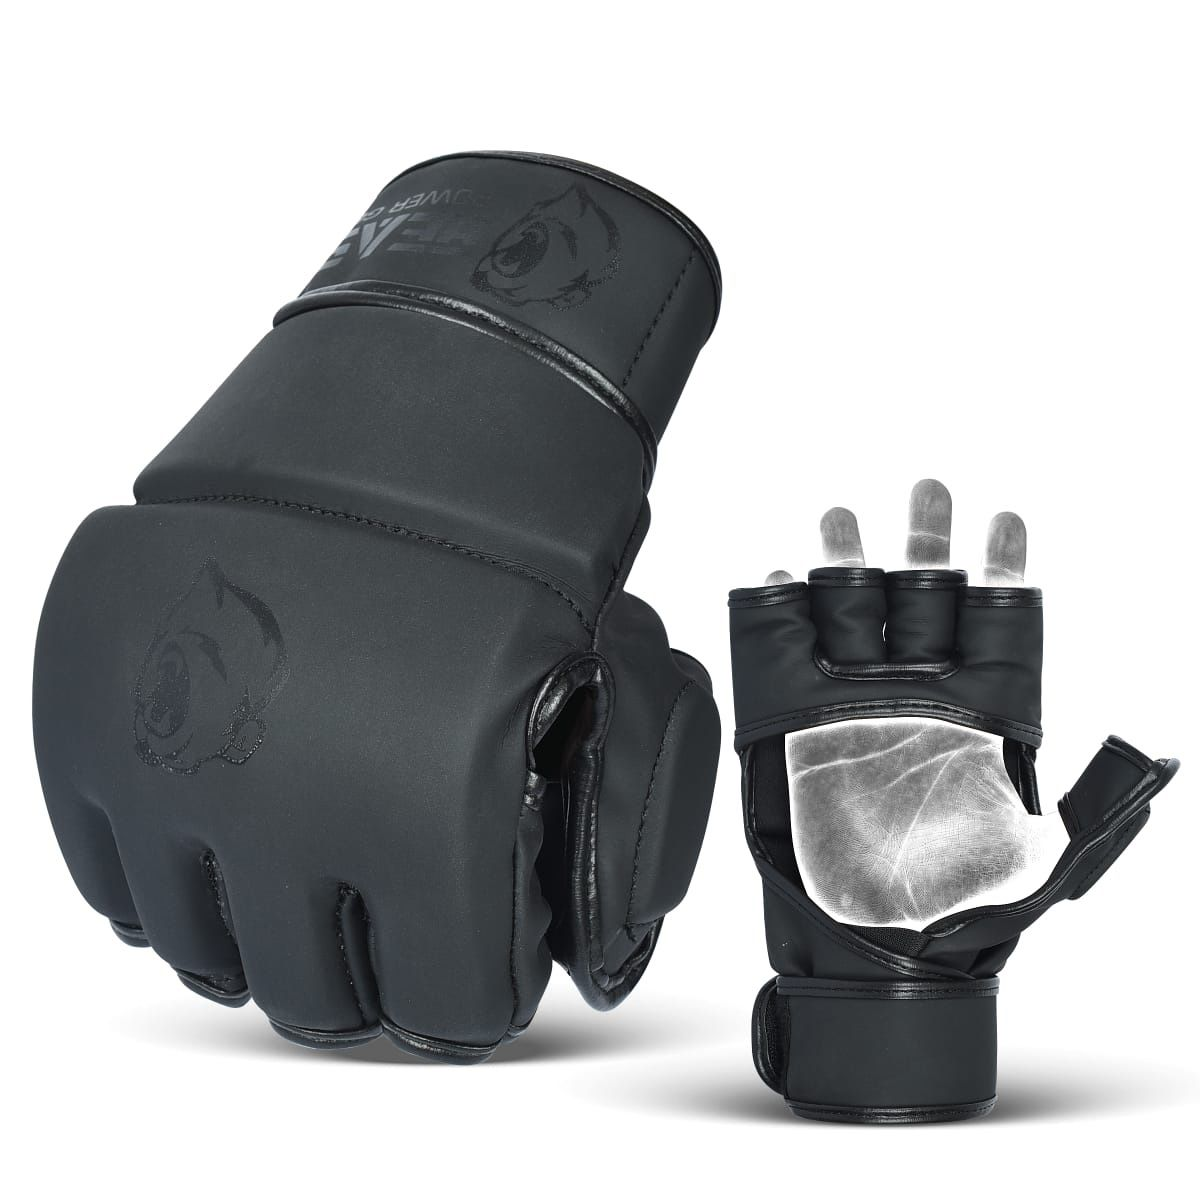 MMA , UFC TRAINING AND FIGHT GLOVES WITH THUMB PROTECTION